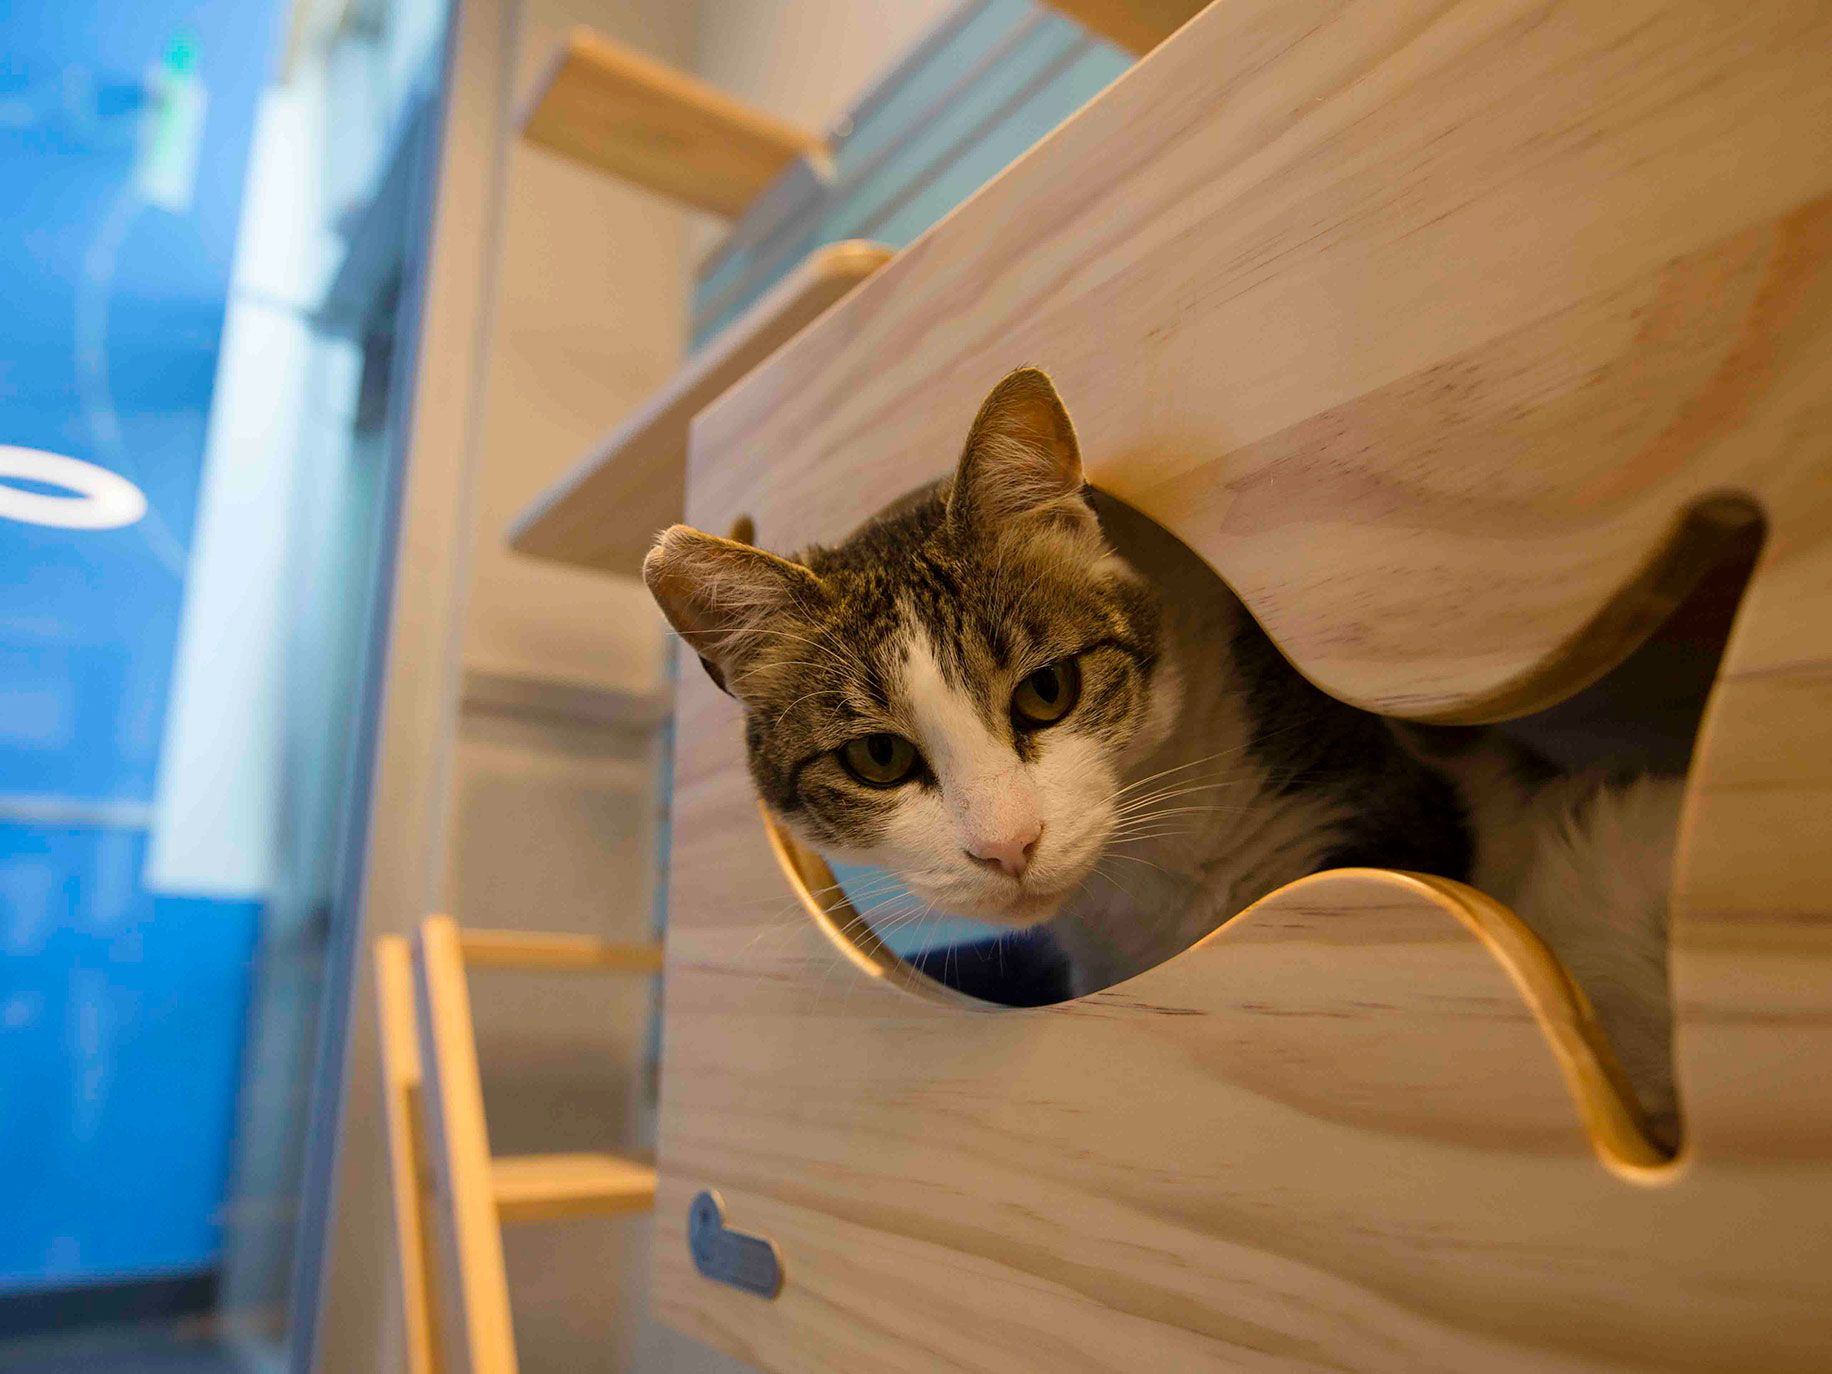 A cat waiting for adoption peeks out from a fish-shaped cut-out at Wallis Annenberg PetSpace in Los Angeles.